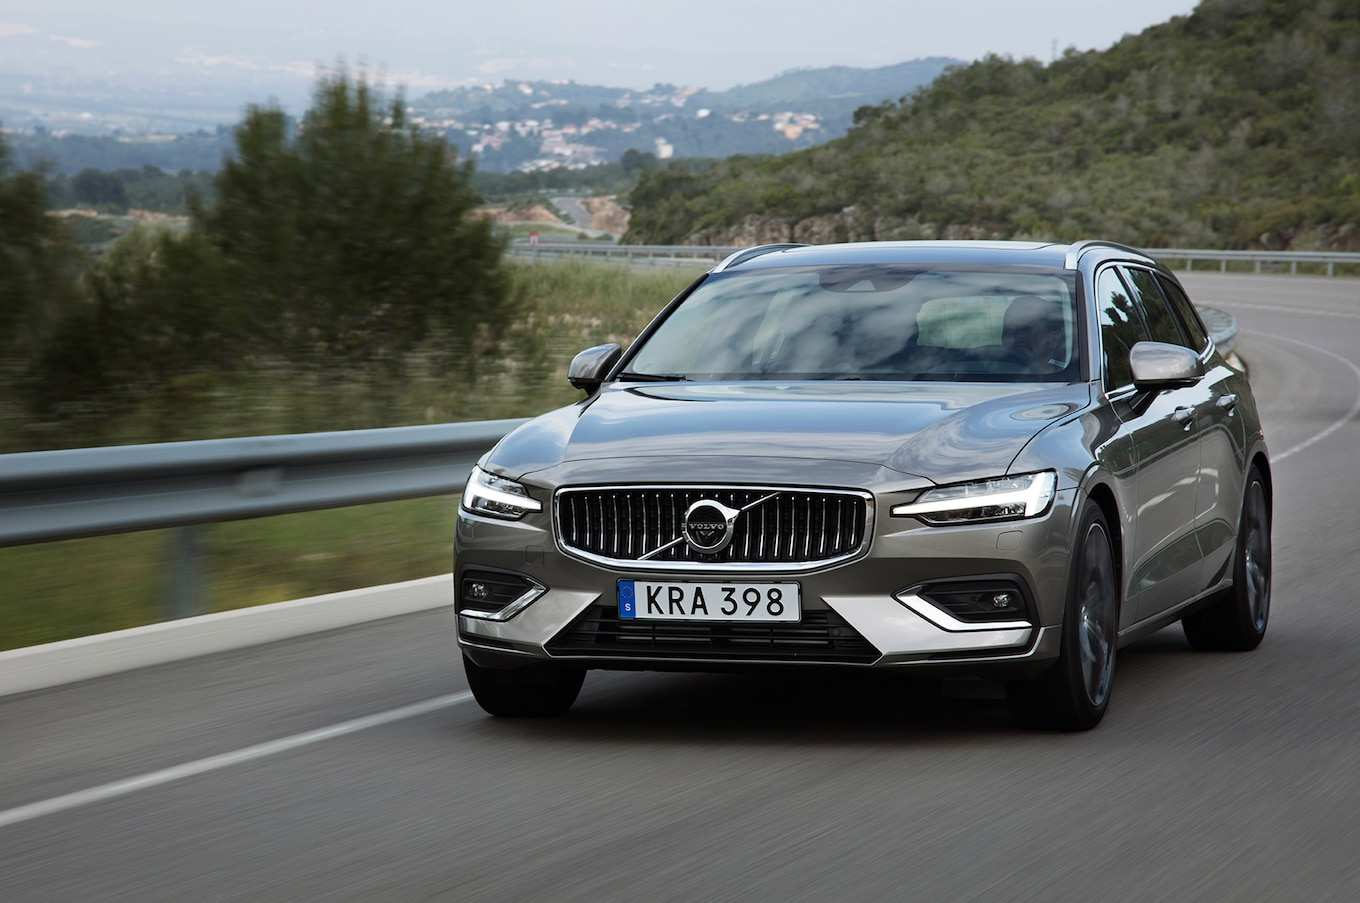 92 A New 2019 Volvo V60 Price Design And Review